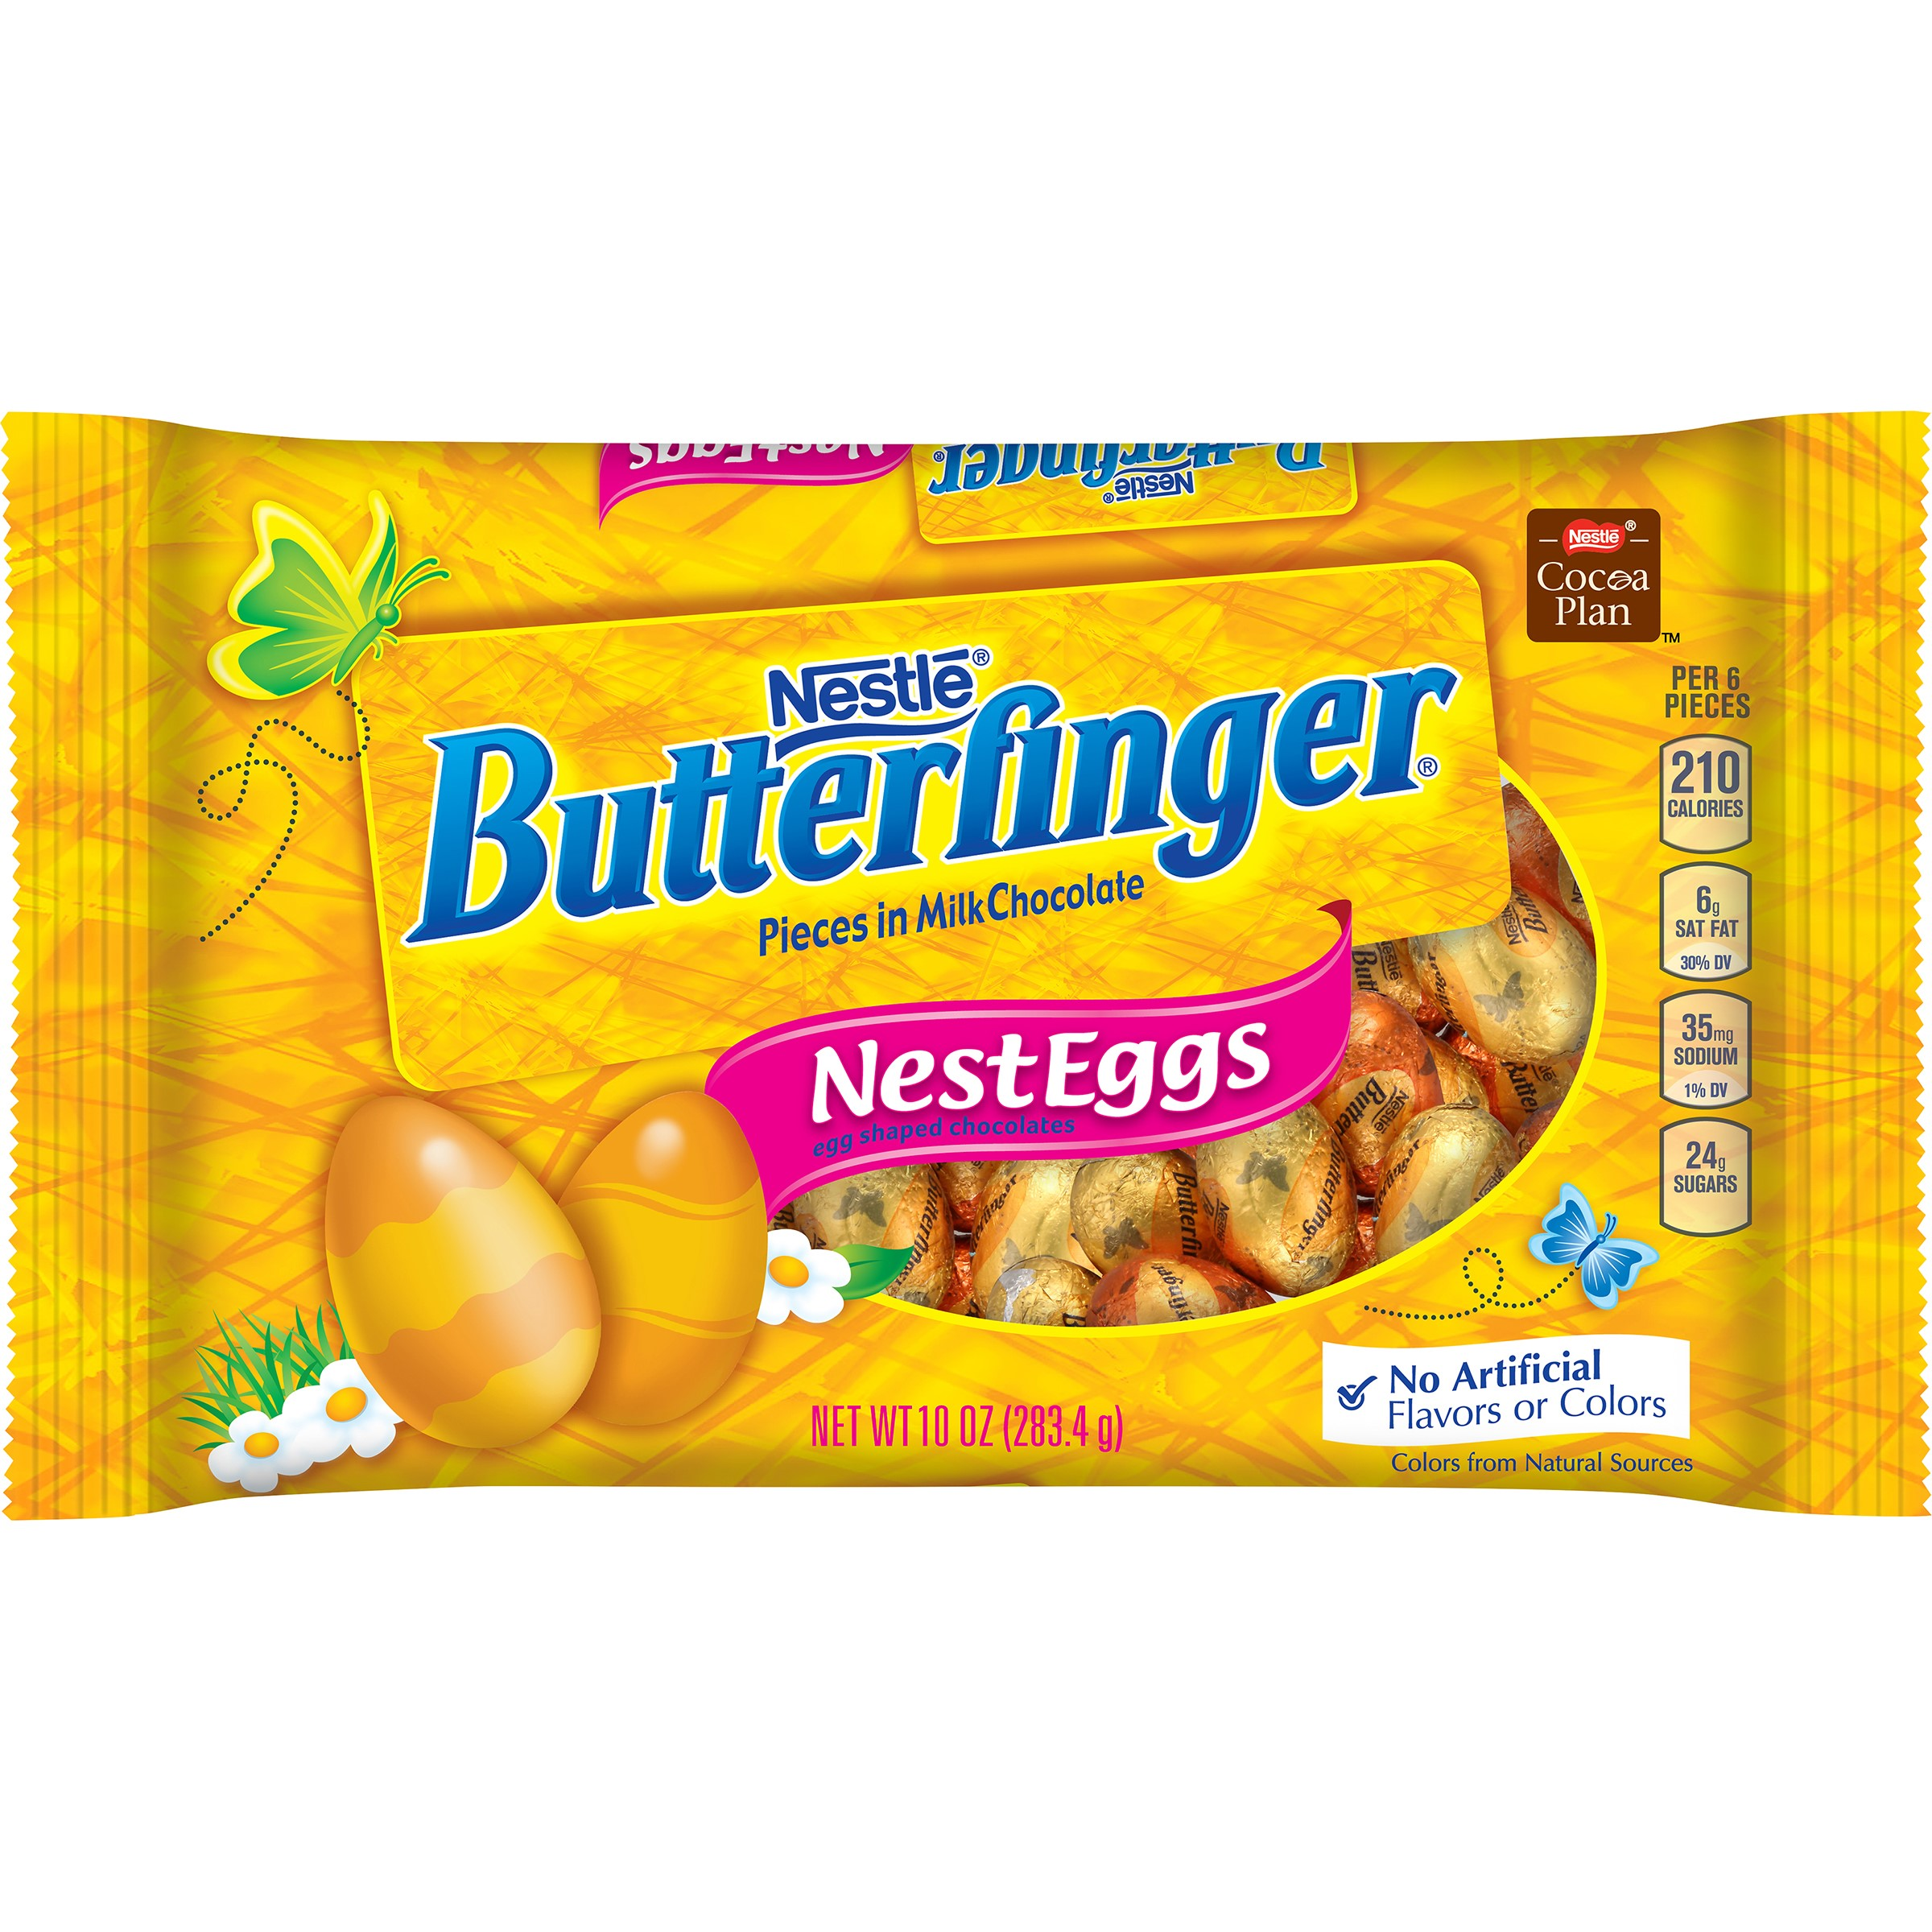 Butterfinger Chocolate, Nest Eggs, 10 Oz